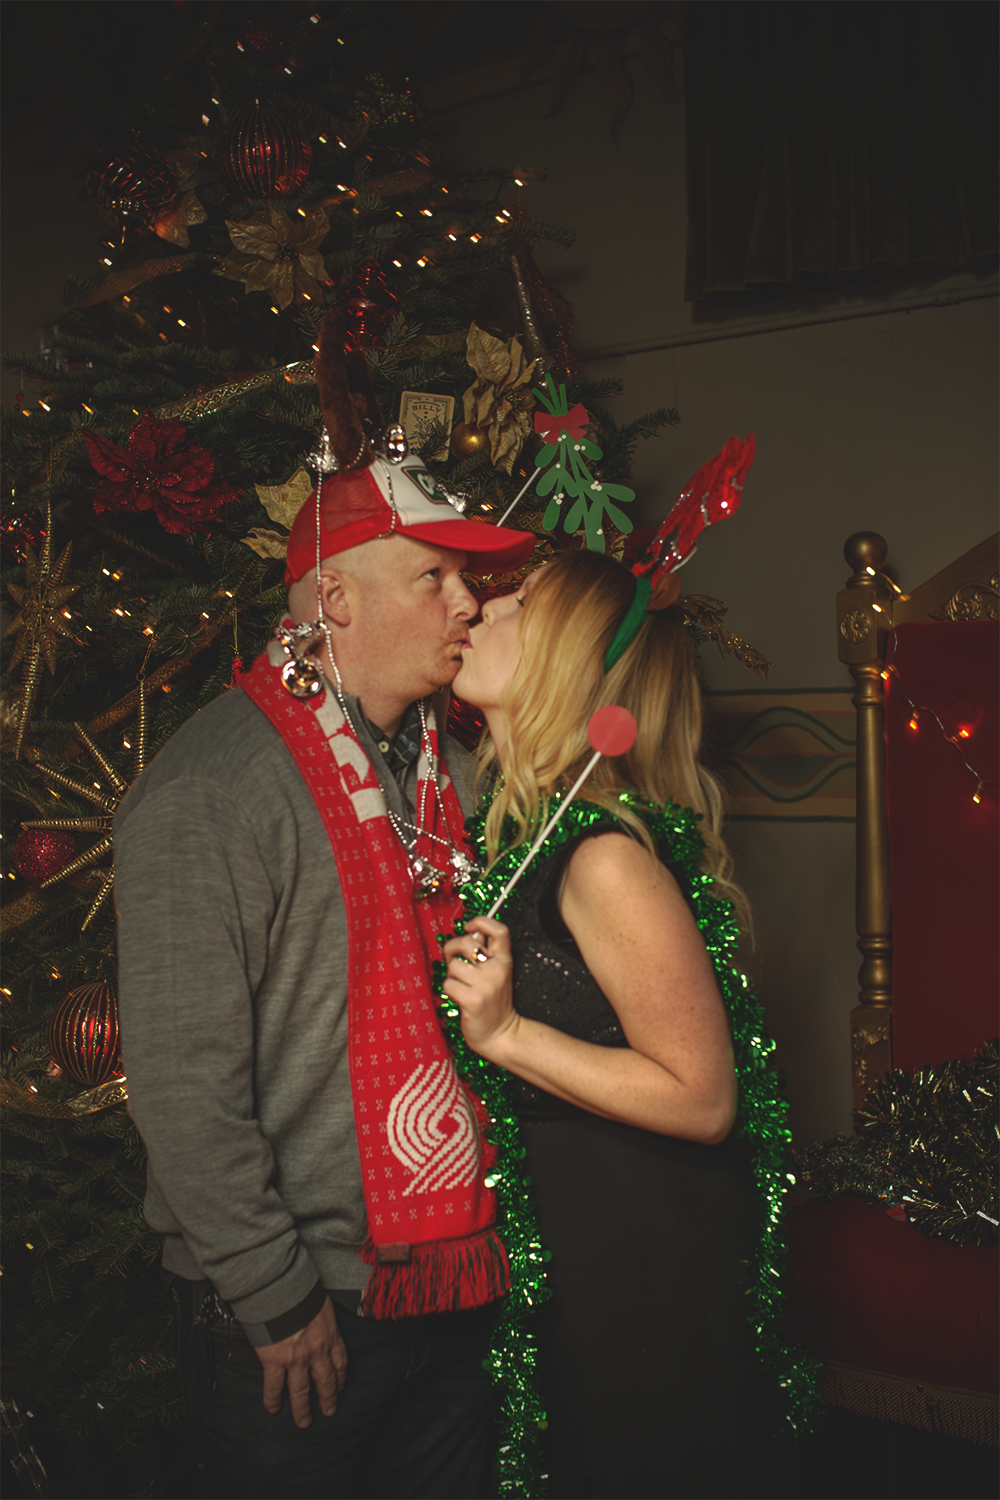 epproperties-vancouver-washington-xmas-party-photolga23.png